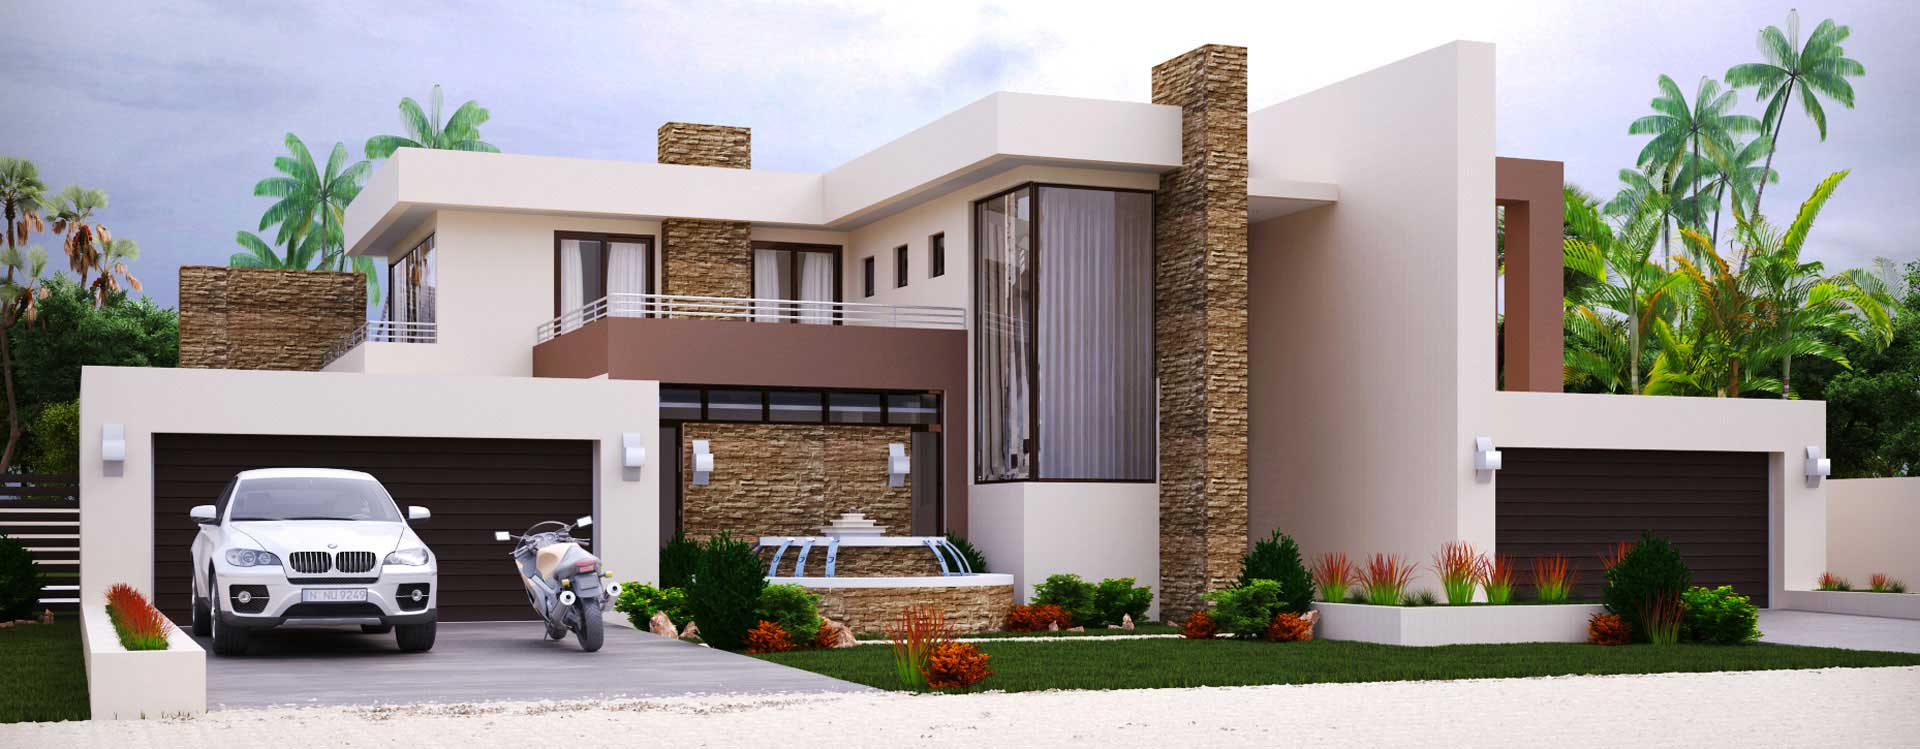 Modern Home Design With 4 Bedrooms